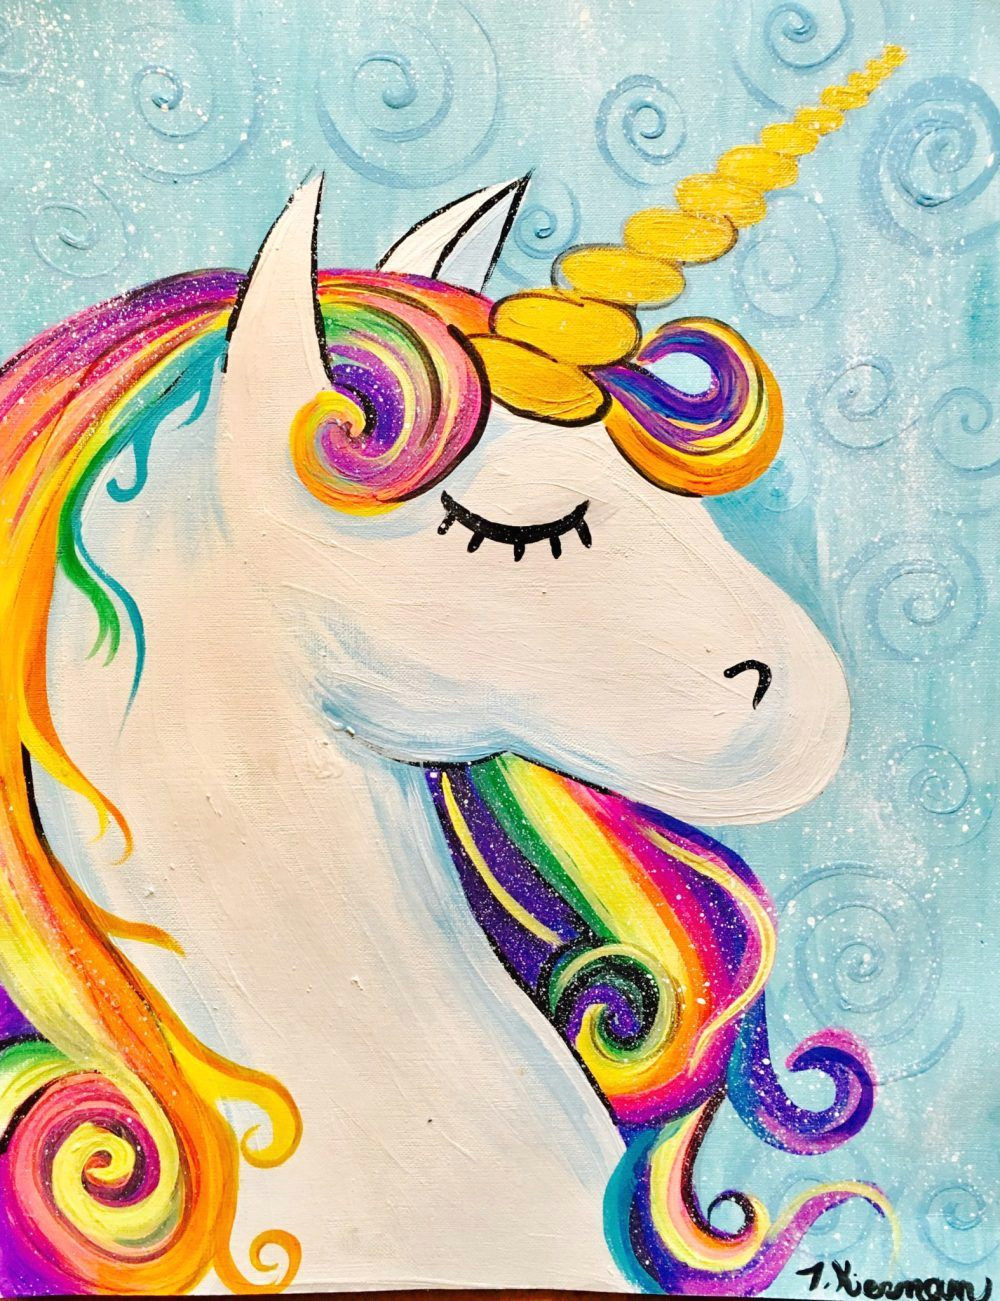 learn how to draw and paint a unicorn head step by step with this tracie s acrylic painting tutorial easy simple and fun directions with pictures and a